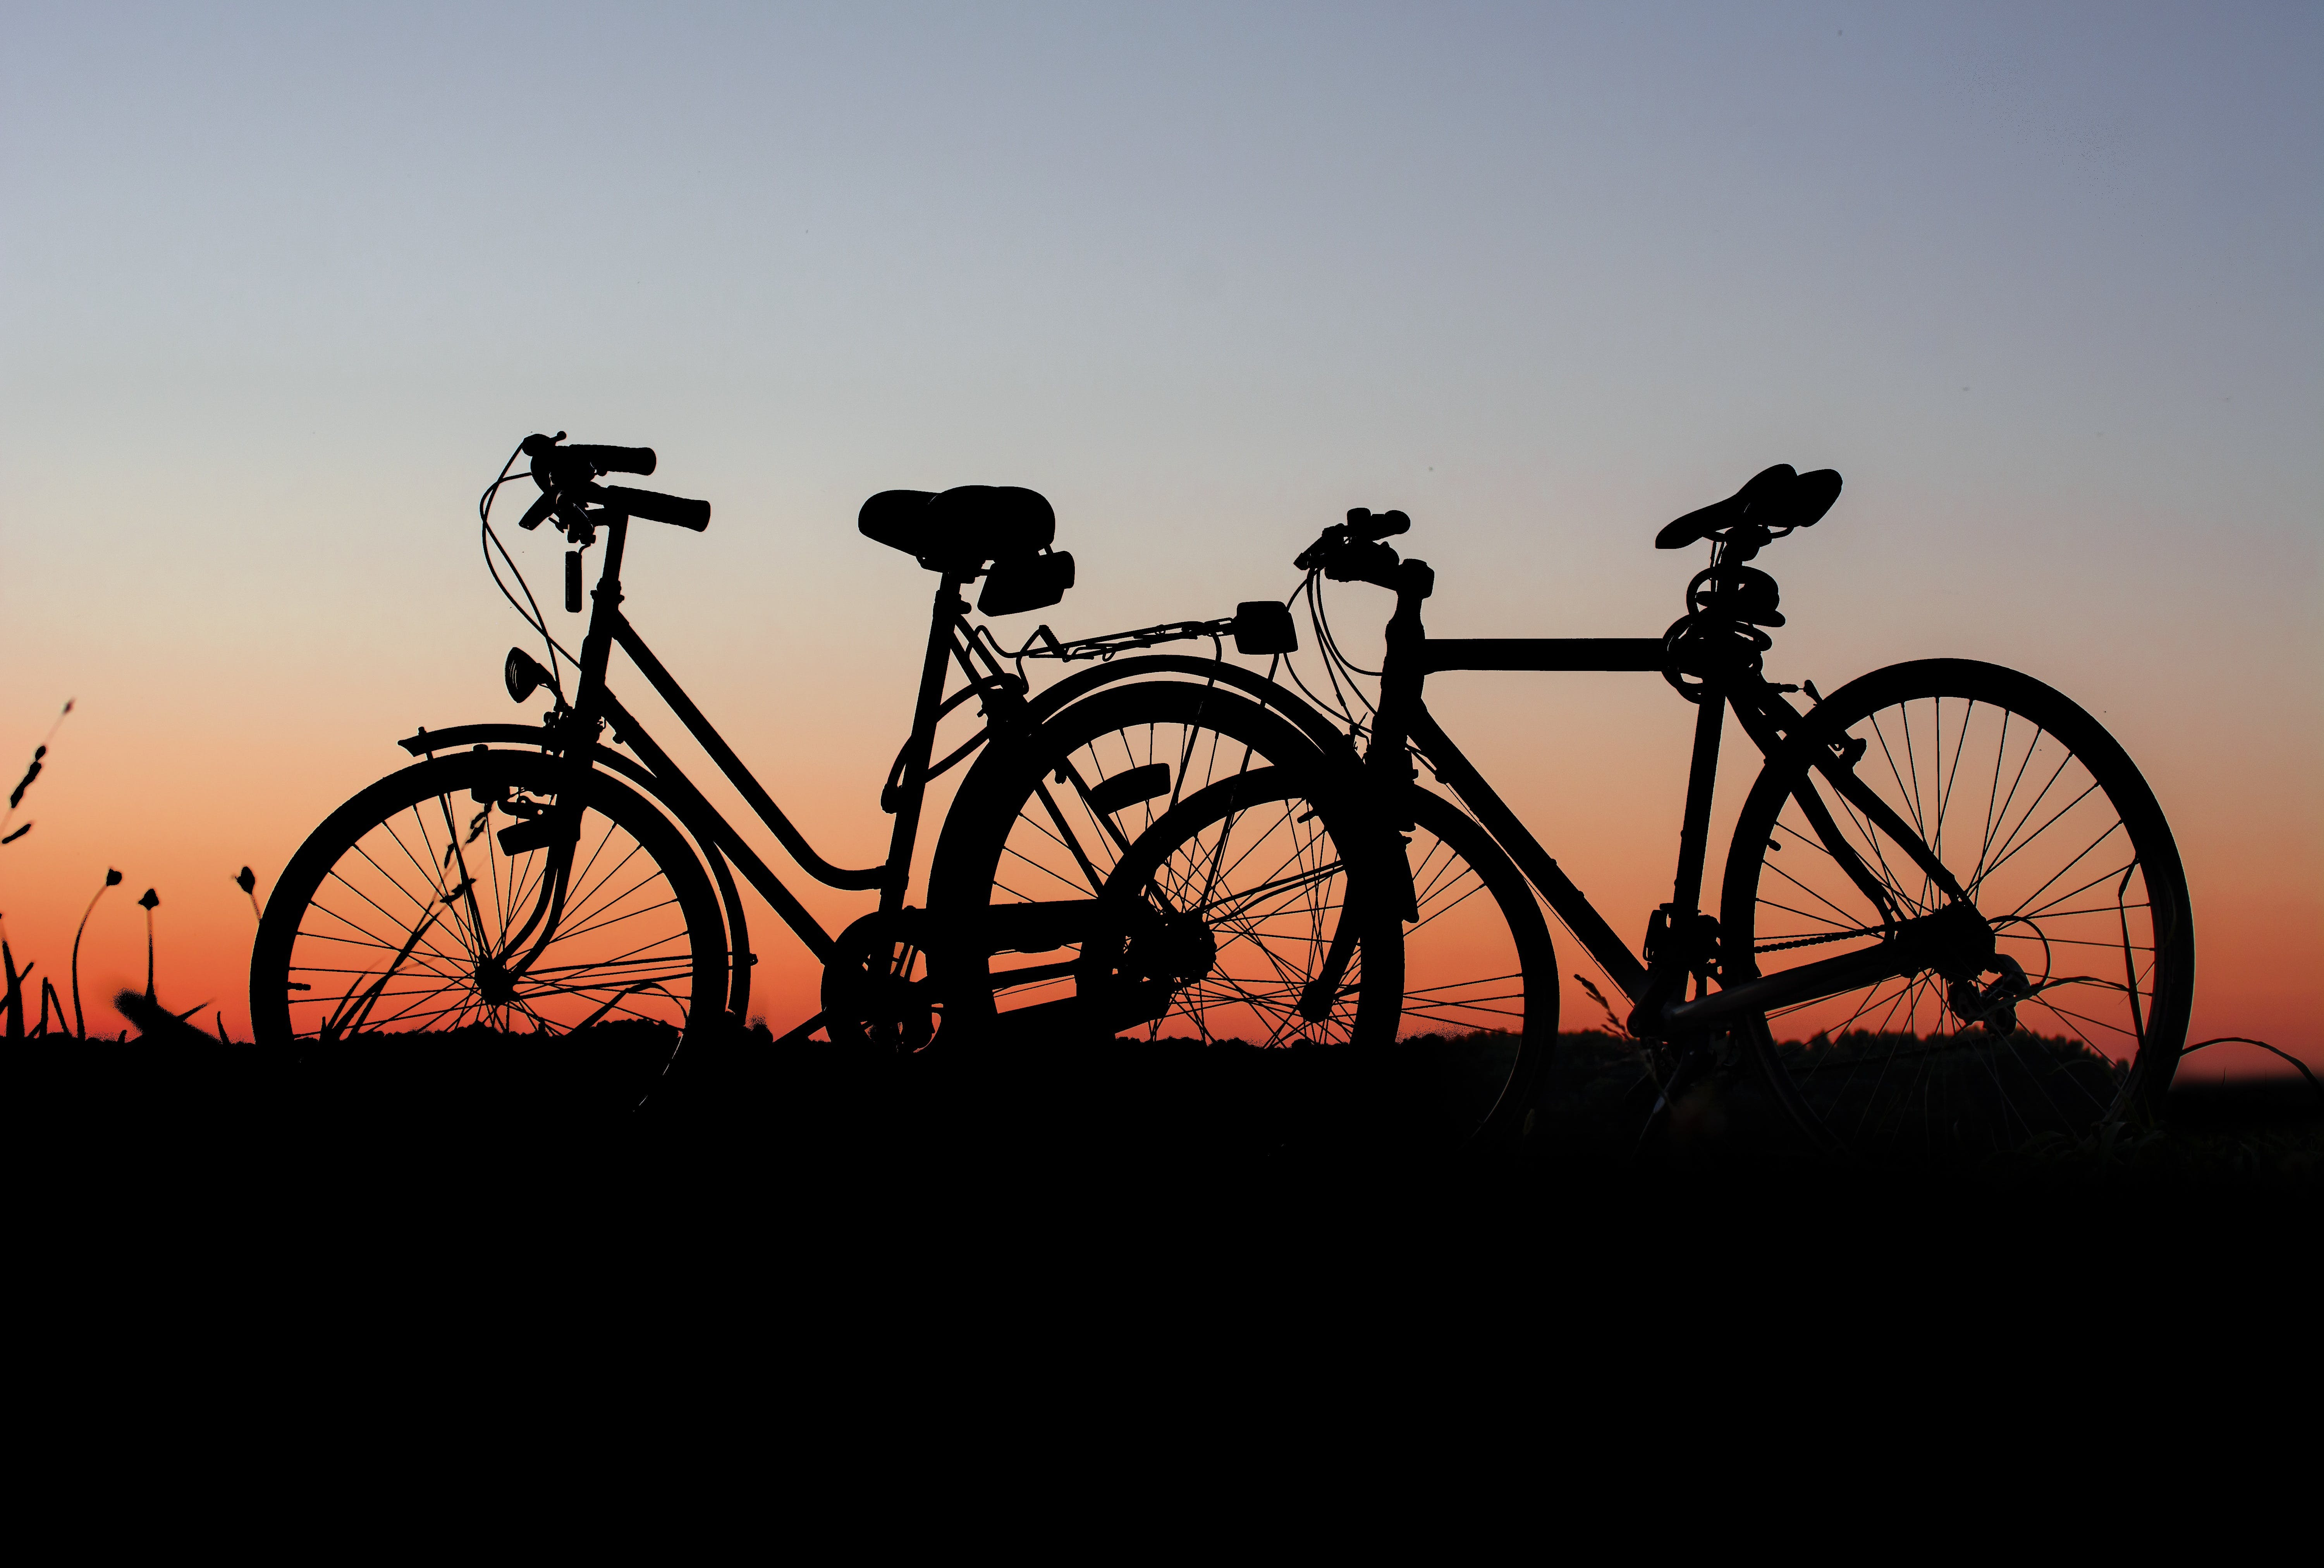 Silhouette of Bicycle on Grass